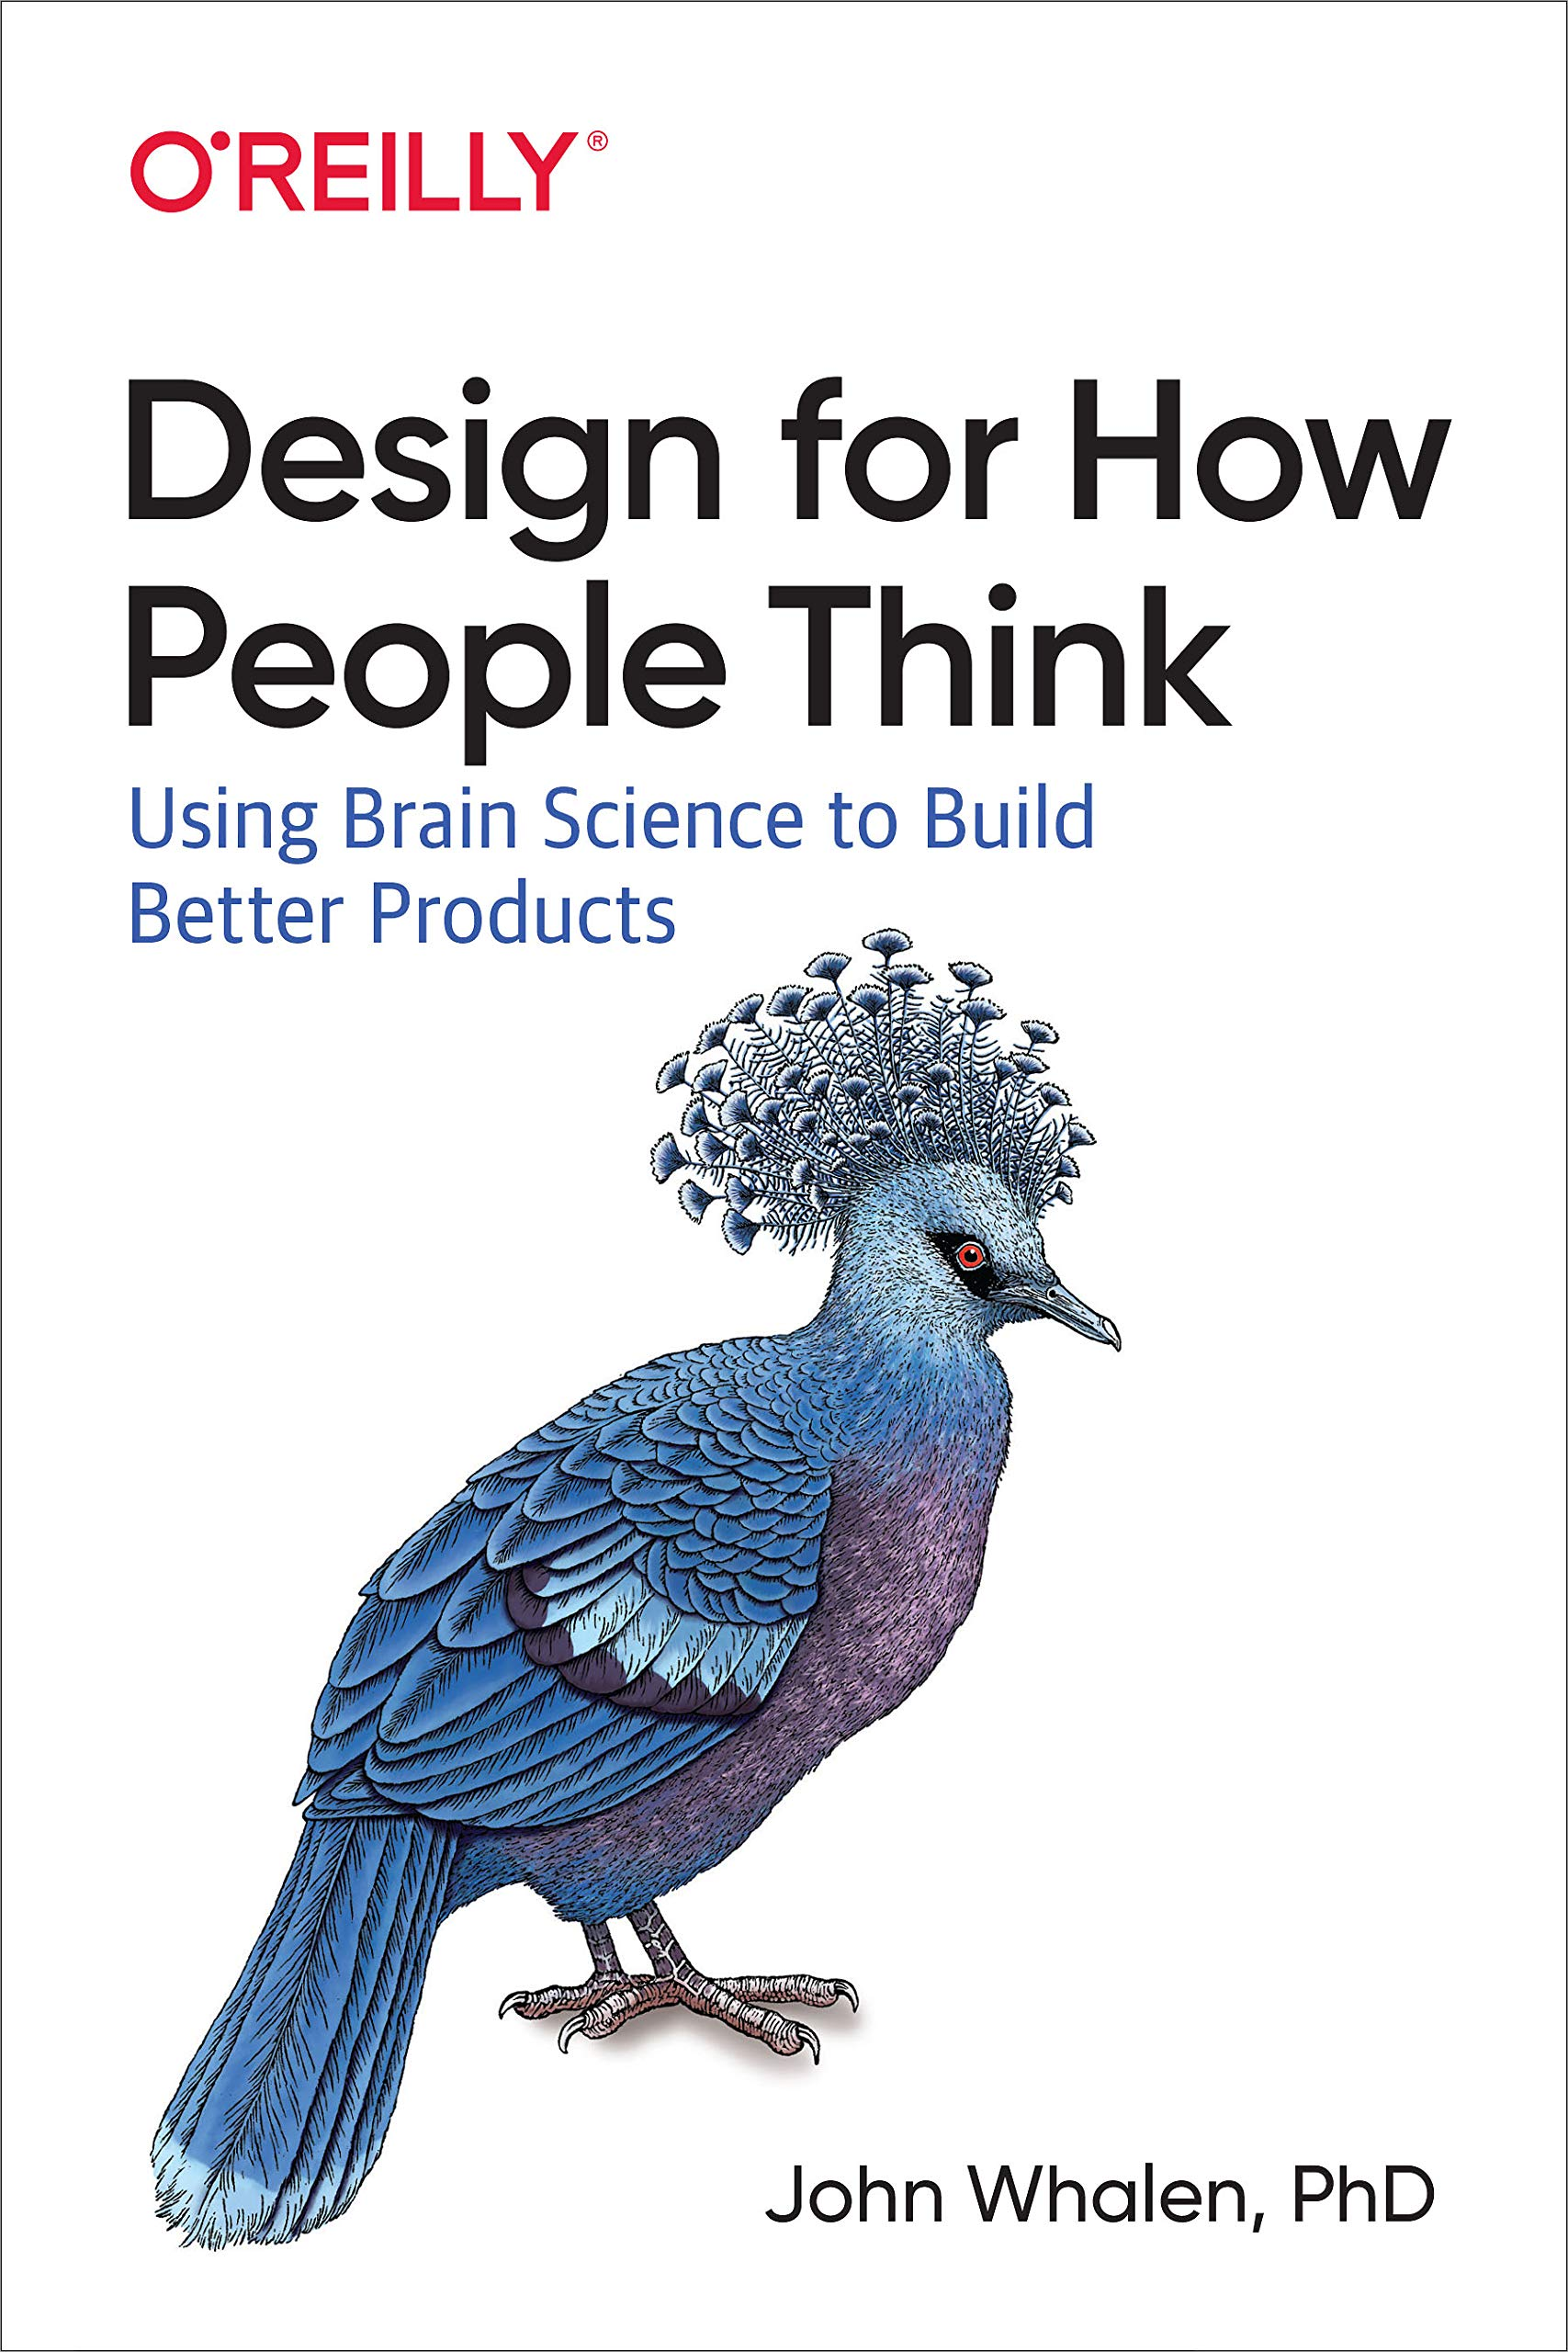 Télécharger Lire en Ligne Design for How People Think: Using Brain Science to Build Better Products (English Edition) 